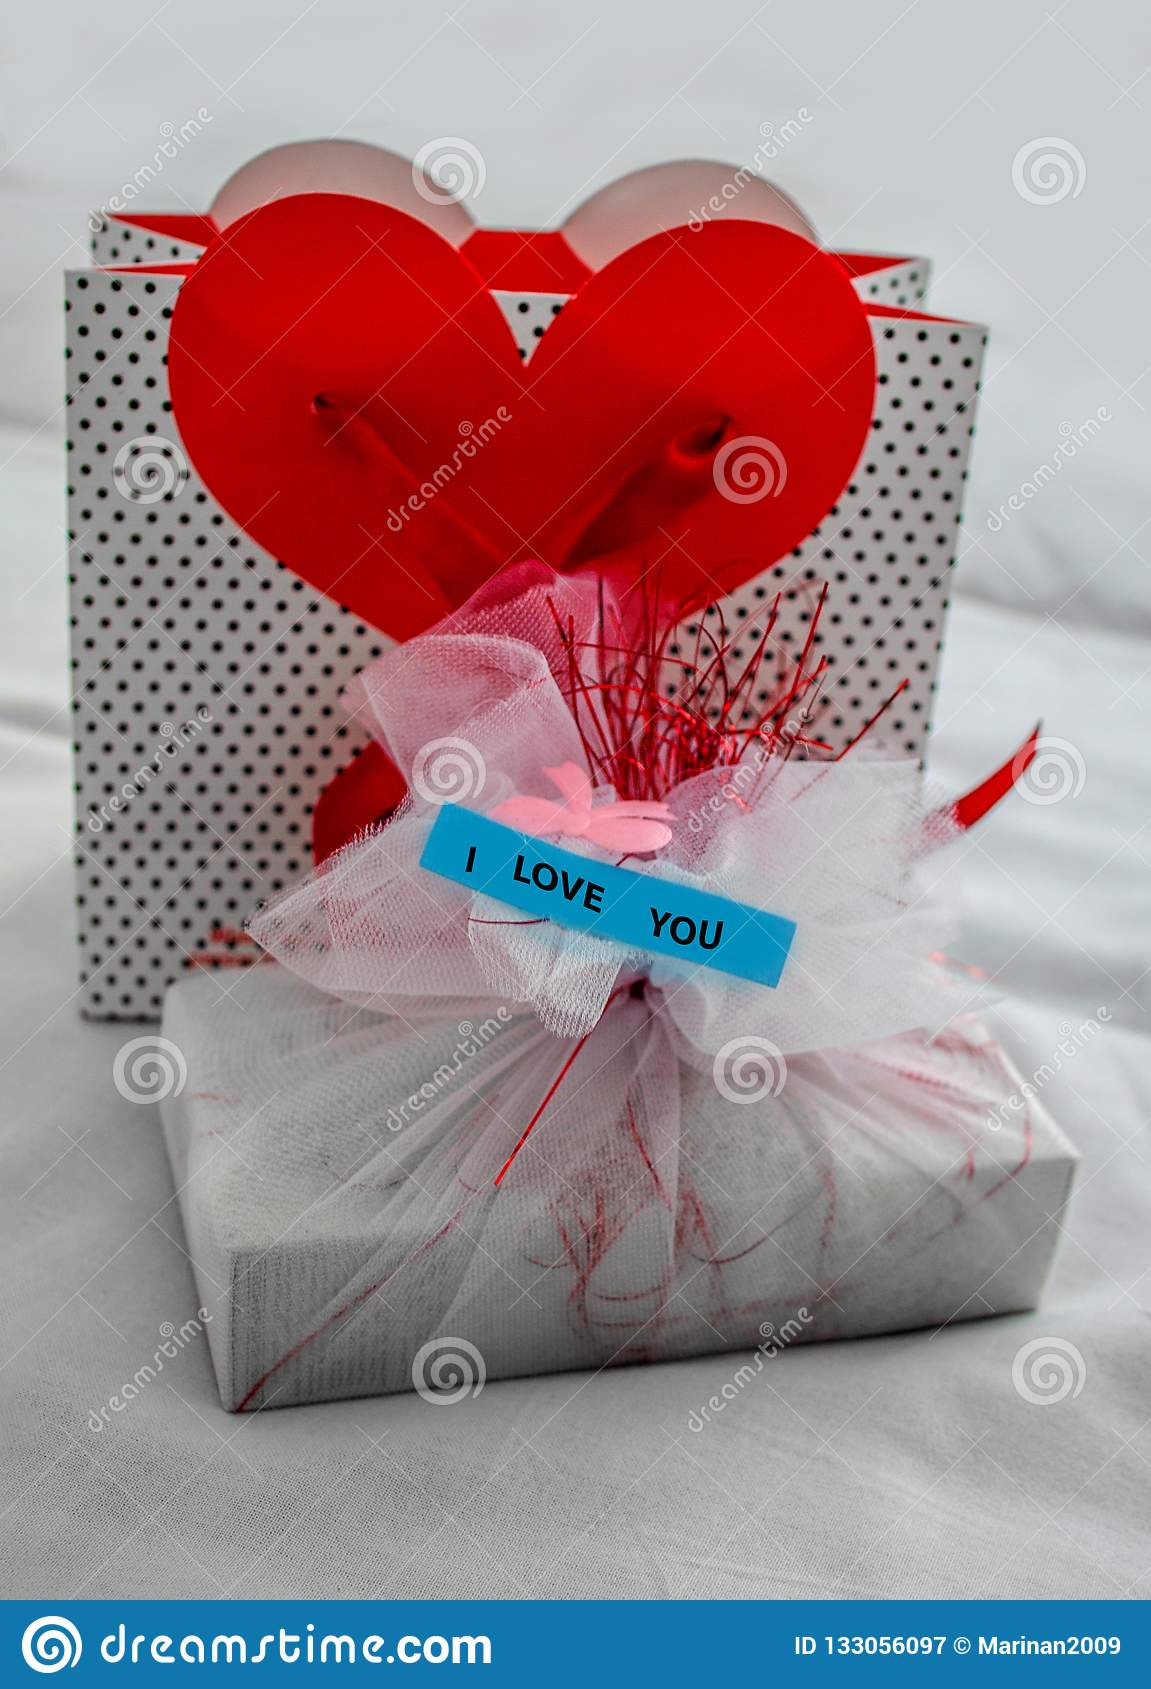 Gifts to give your girlfriend on birthday